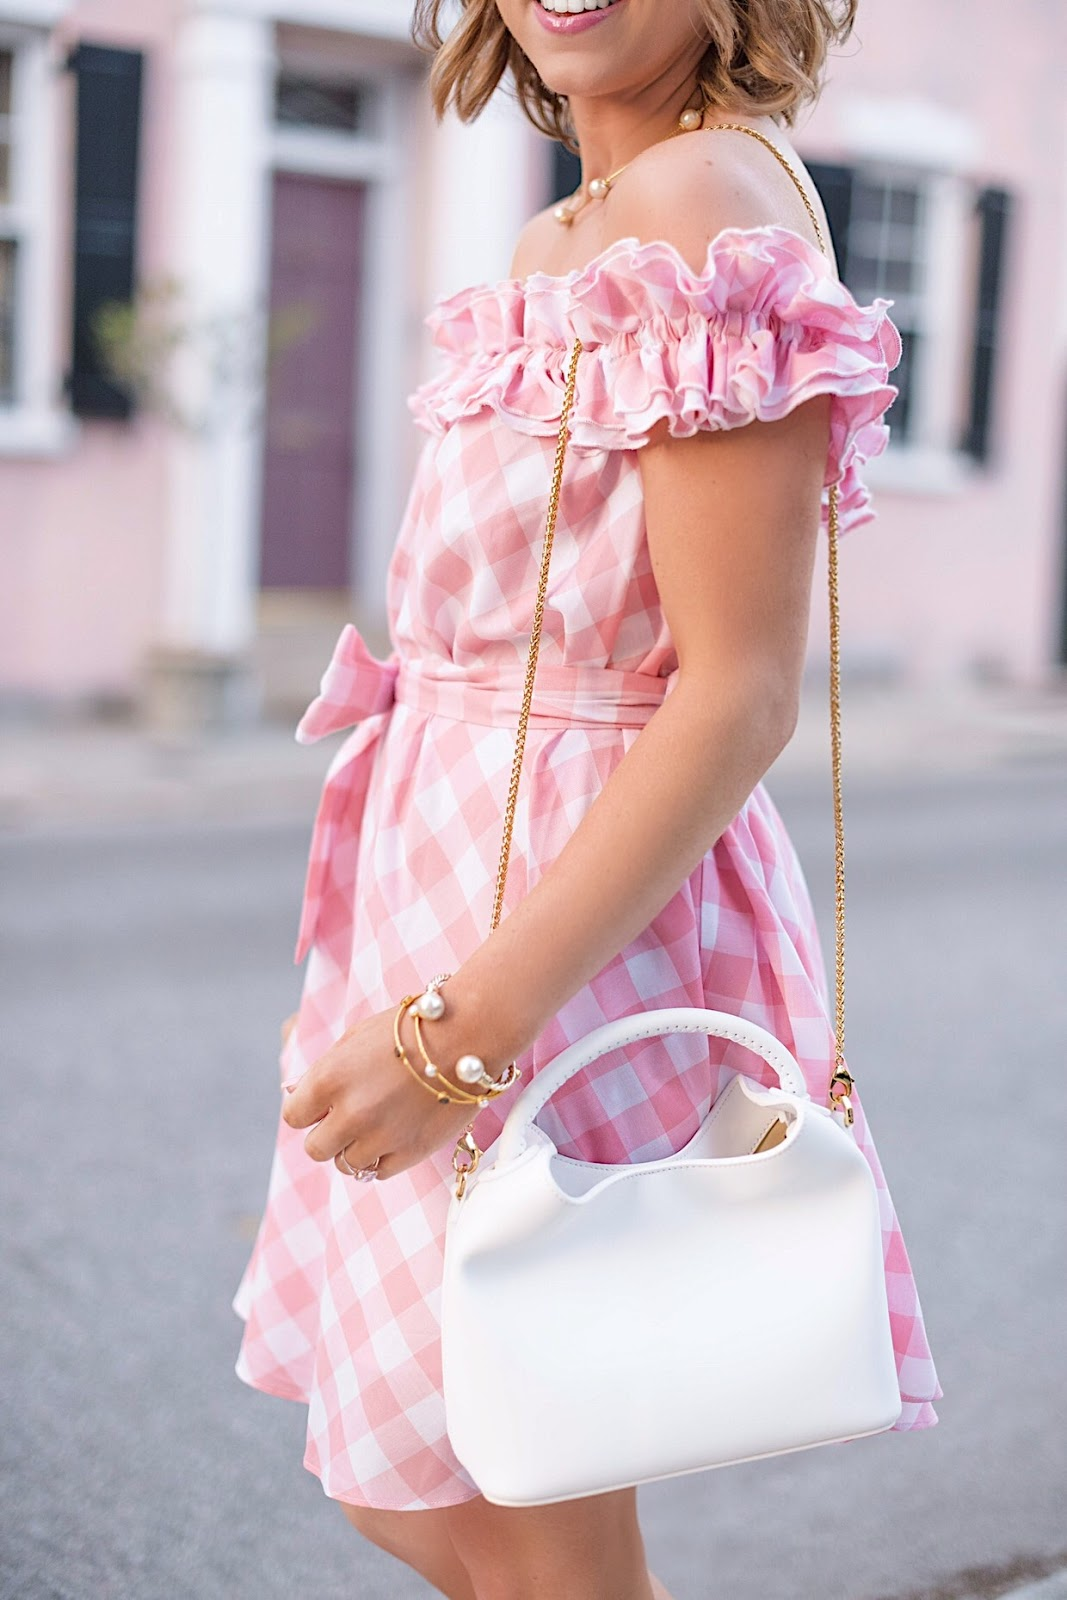 Pink Gingham Ruffle OTS Dress - Something Delightful Blog